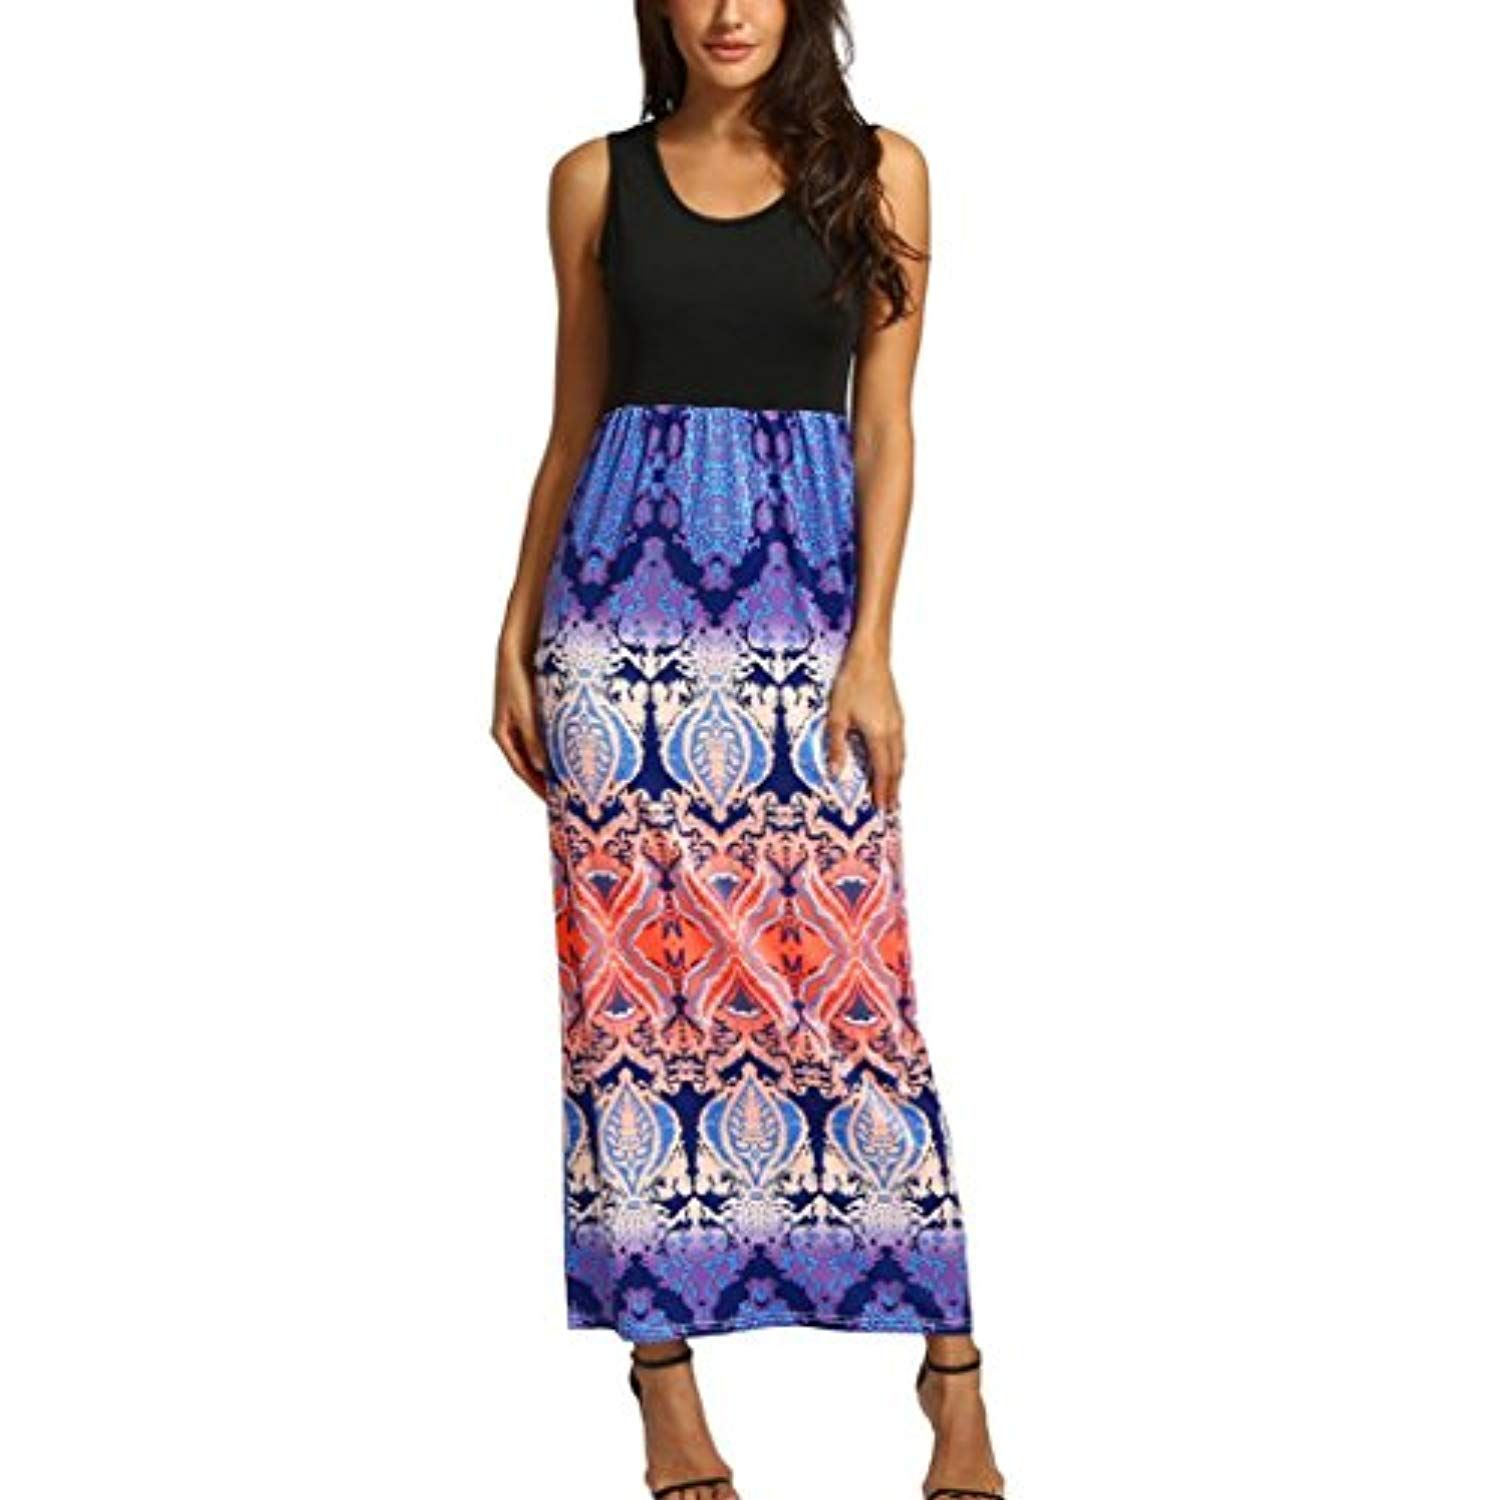 7023d124e1c New Fashion Women Bohemian Long Maxi Dress Printed Splice Tank Sleeveless  Casual Summer Beach Dress -- Check out this great product.